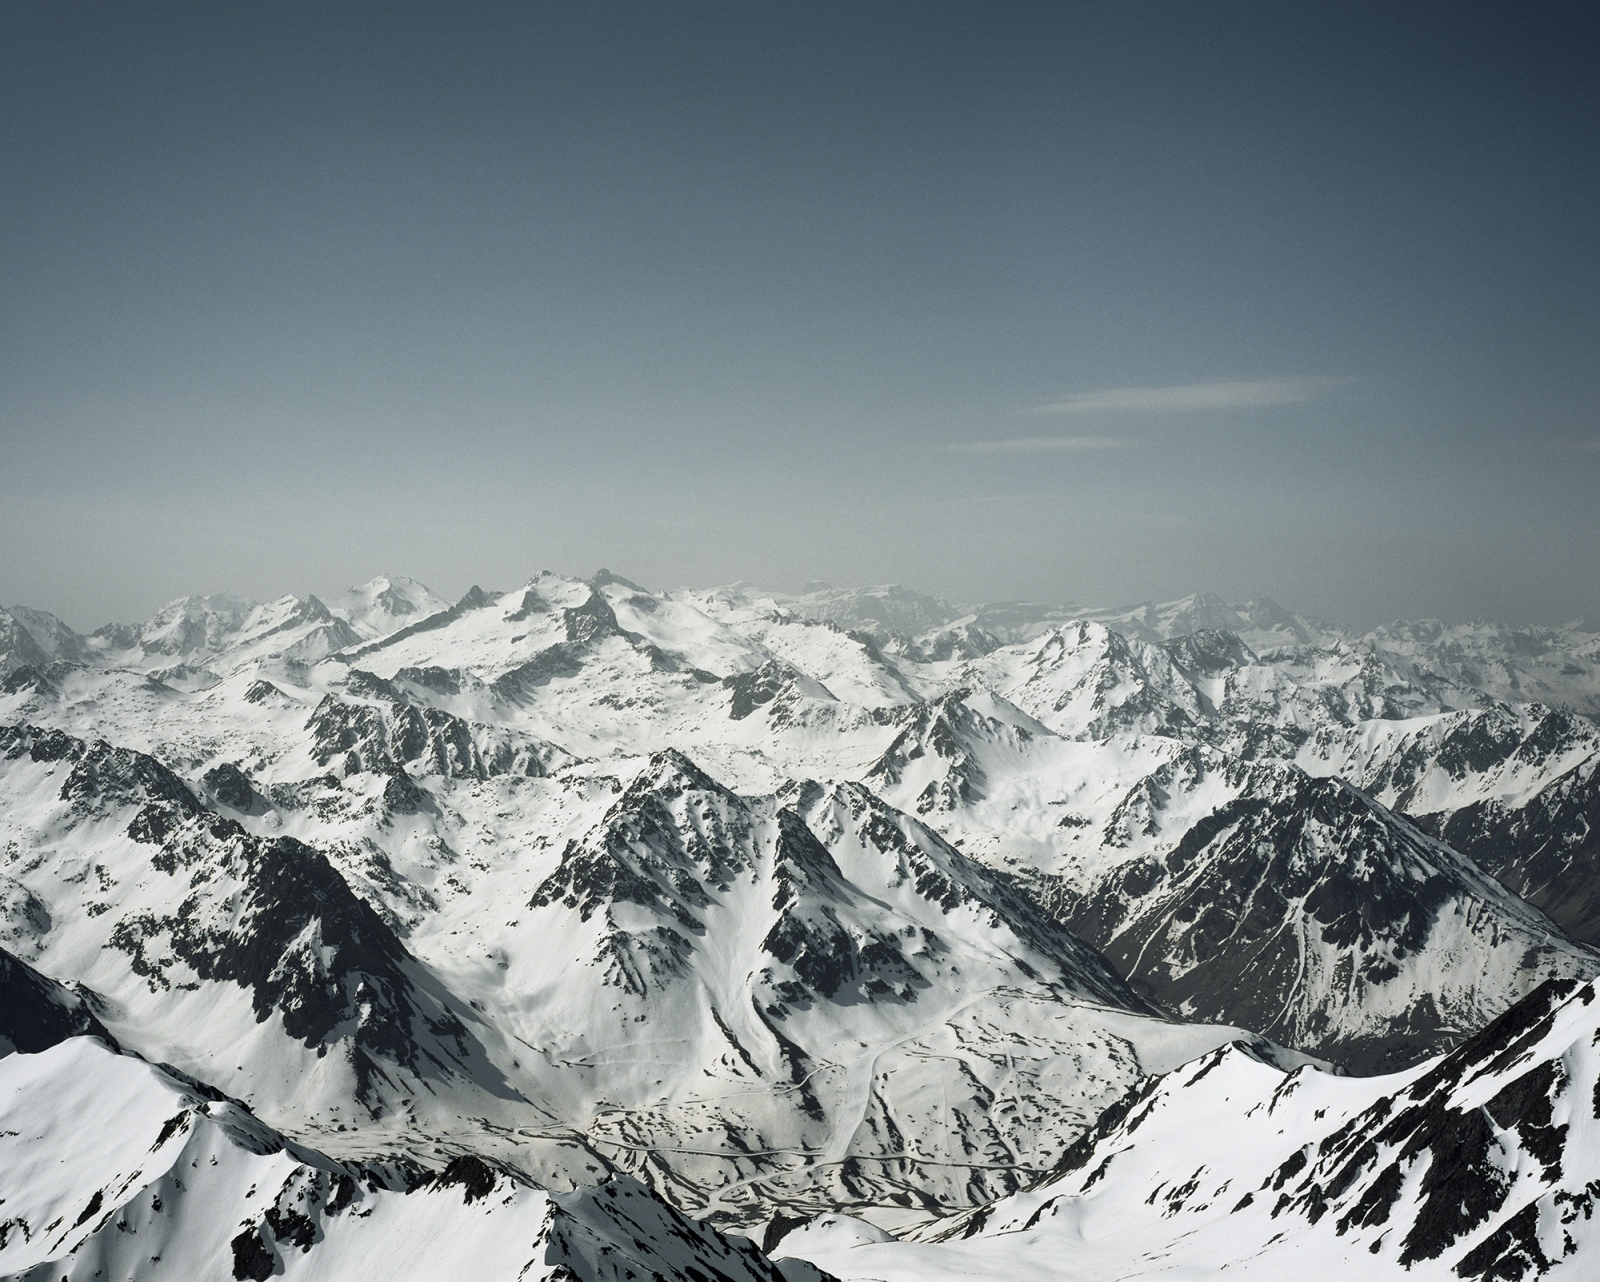 France, Pic du Midi. A view of the Pyrenees.